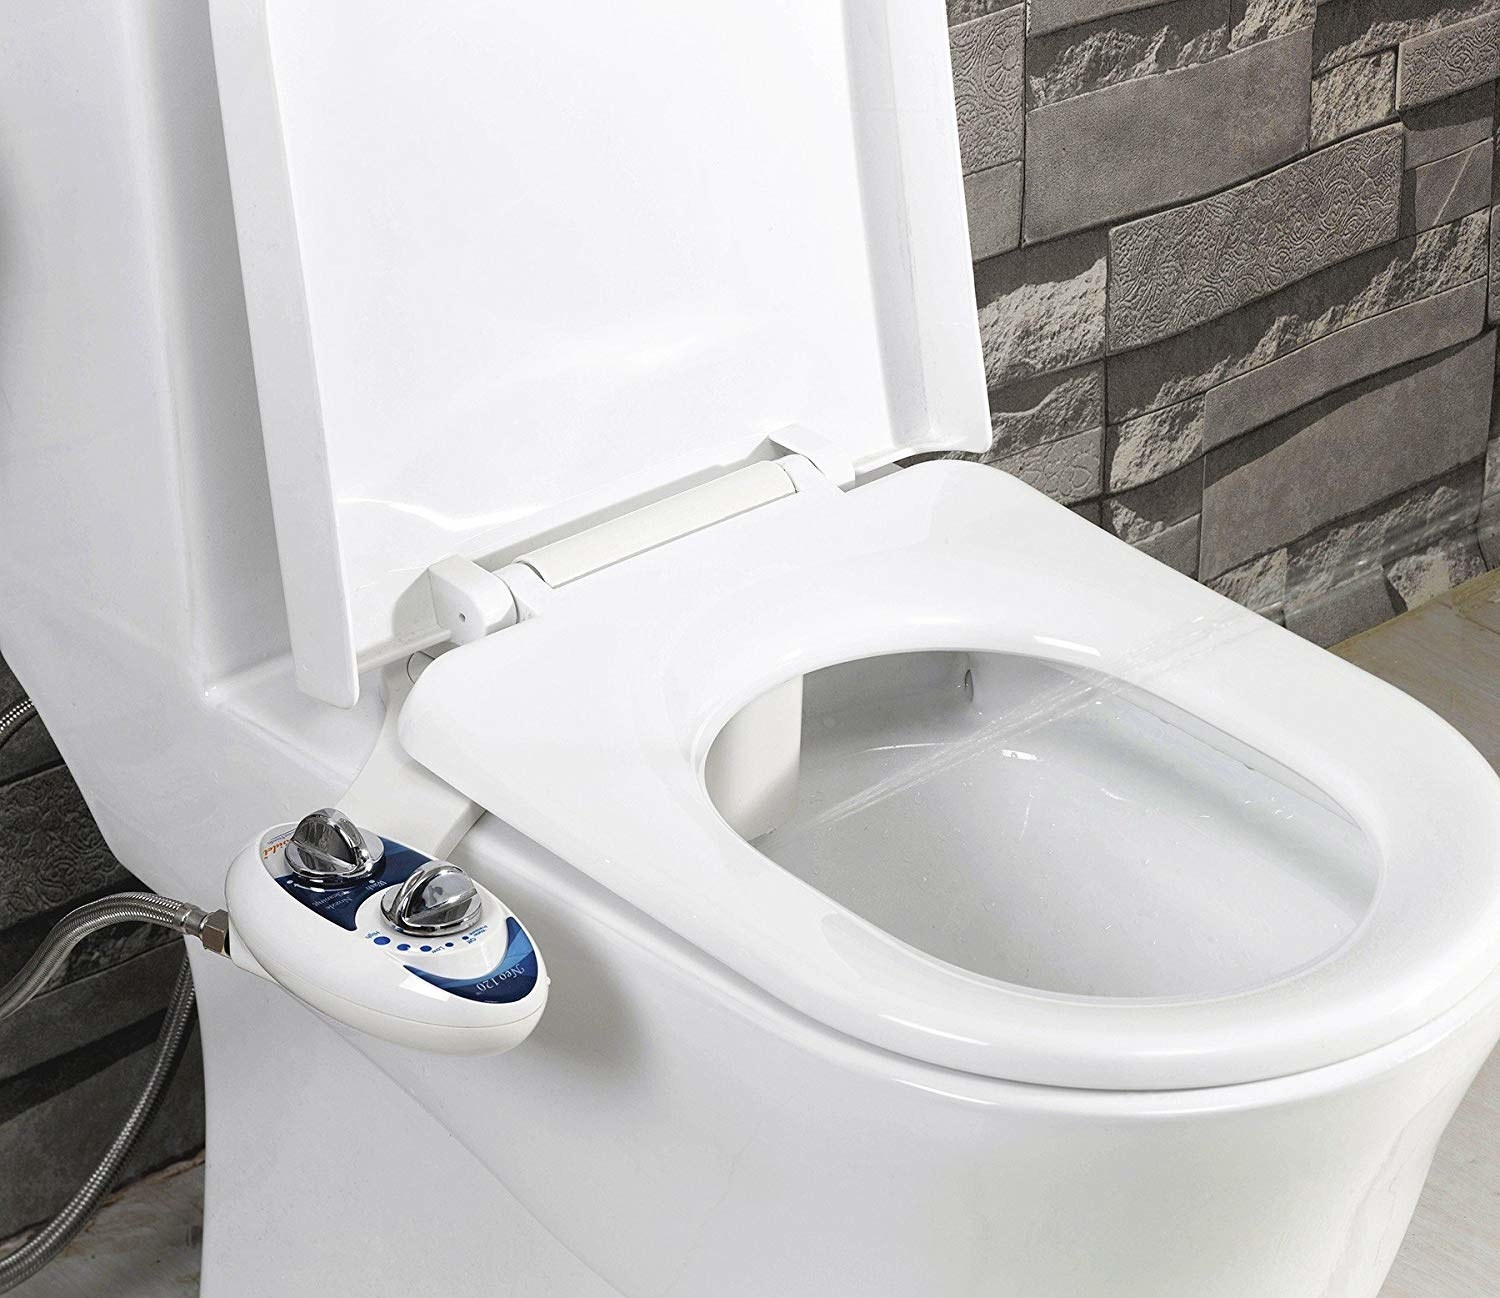 bidet attachment on toilet with small control dial